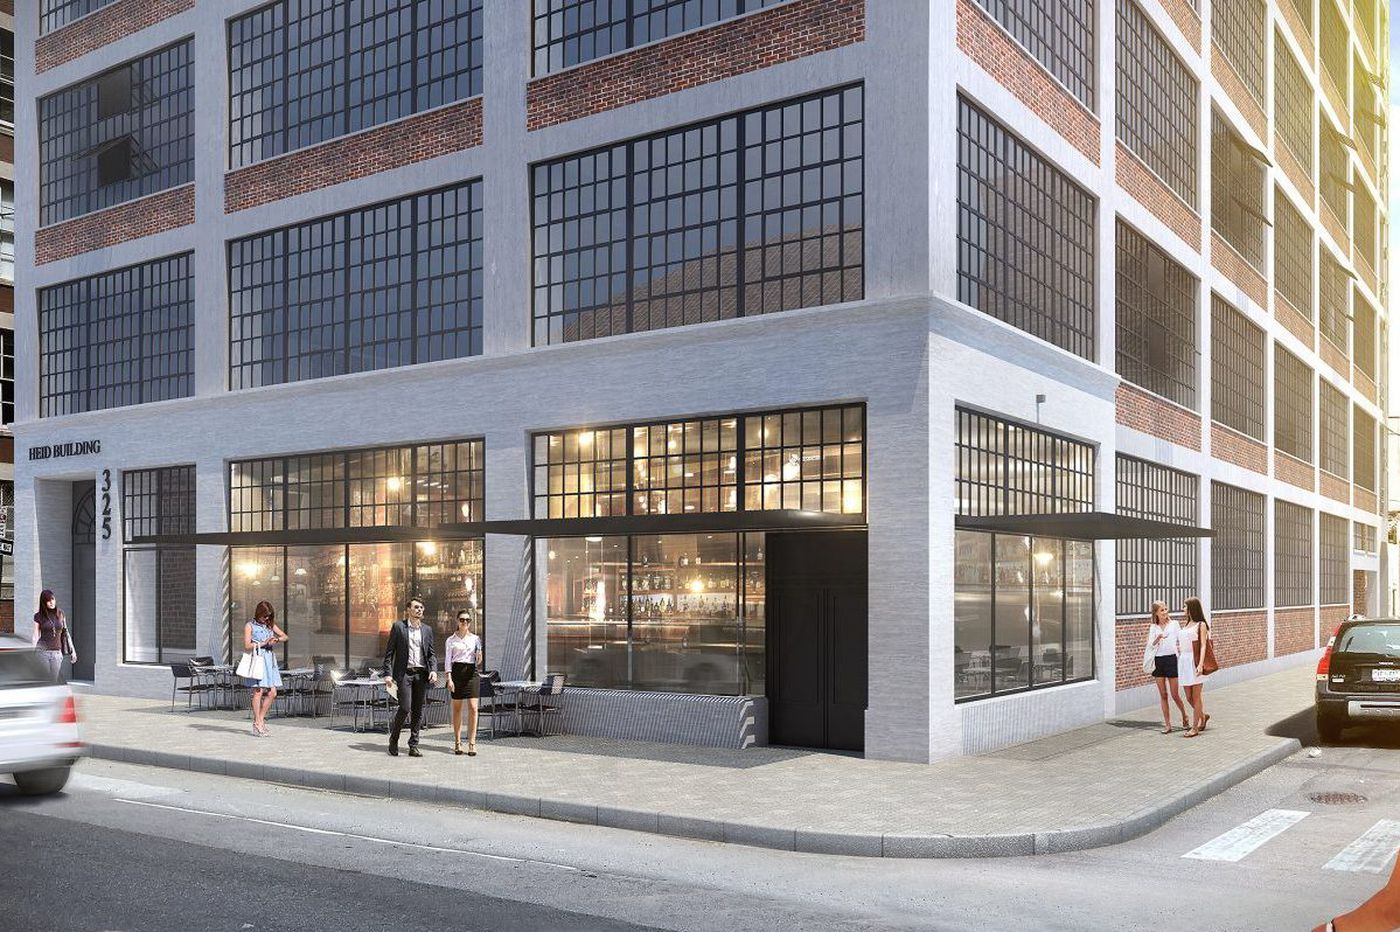 Apartments to fill old hat factory north of Center City, as developers embrace industrial rehabs